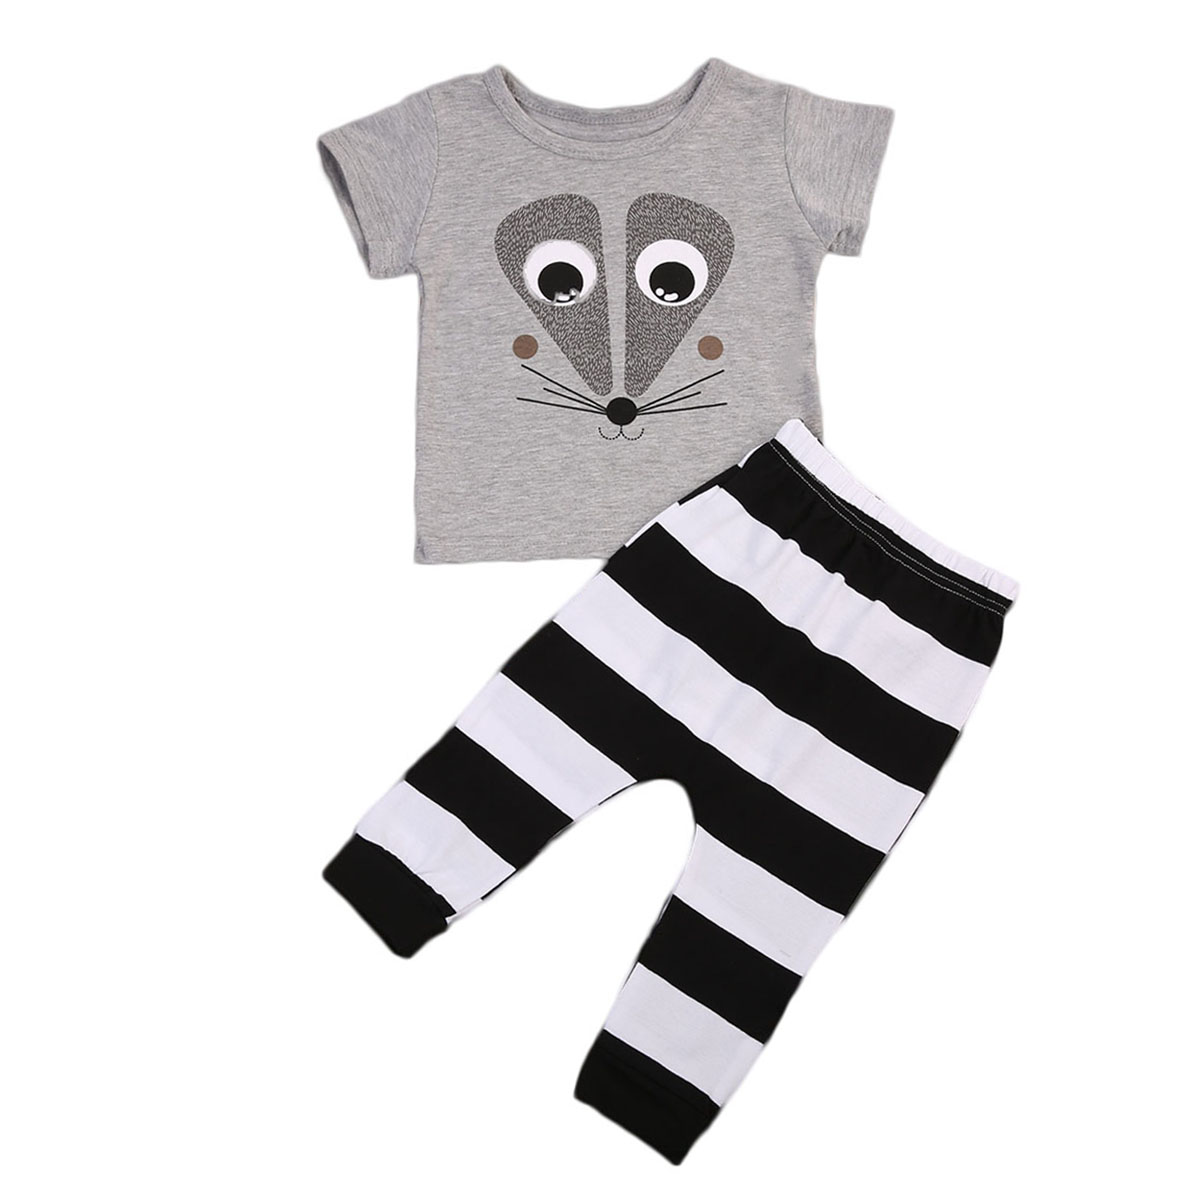 Newborn Toddler Kids Clothing Sets Baby Boys Outfits T-shirt Tops+Pants 2pcs Clothes Set Cute